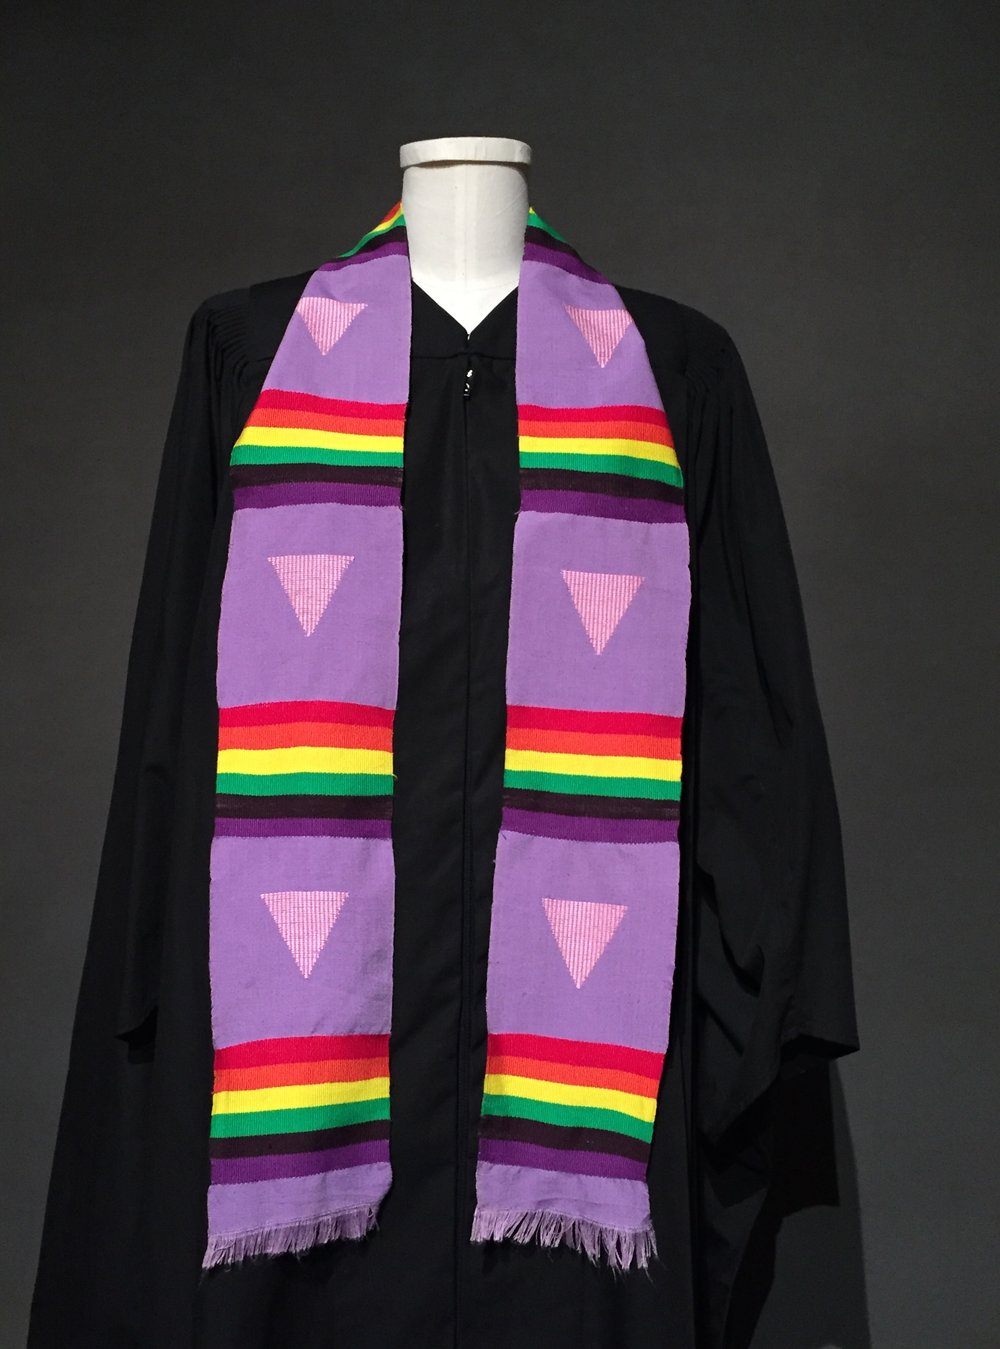 "- Graduation robe, lavender graduation stole with triangle motif; Owner – LGBTQIA+ Student Success Center at Iowa State University; c. 1990sGraduation robe, Fashion & Culture Research Lab at Iowa State University""Lavender Graduation started around 1997 or 1998. The first 15 years of the program [the Lavender Graduation] we gave rainbow tassels that you would add, but you could not wear it at graduation. They didn't allow you to at the official graduation ceremony because each college has its own tassel. I don't remember what year it was, but what we realized was we could start wearing stoles. The stoles could be added and worn, and we got permission to do that and so we started giving the graduates stoles. The first year at Lavender Graduation, we had a 6 to 8 [students] participate where as now we have about 25-30 participate, and they get a stole that they get to wear at the graduation ceremony."" –personal interview with Brad Freihoefer, Director of the LGBTQIA+ Student Success Center at Iowa State University, September, 2017"